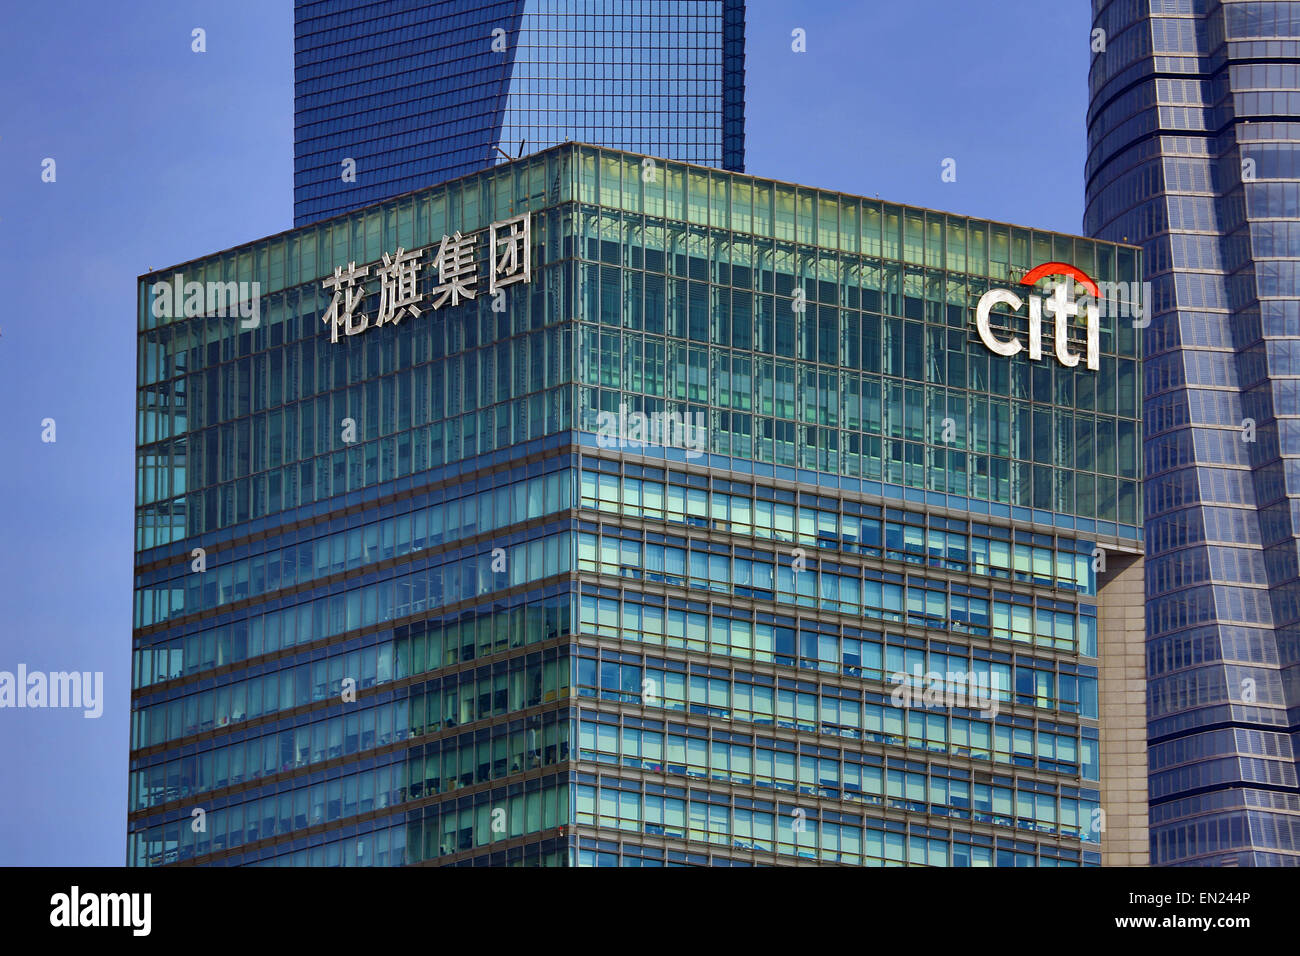 citibank in china Zhiyi zhang relationship manager in international banking business at citibank china location beijing city, china industry financial services.